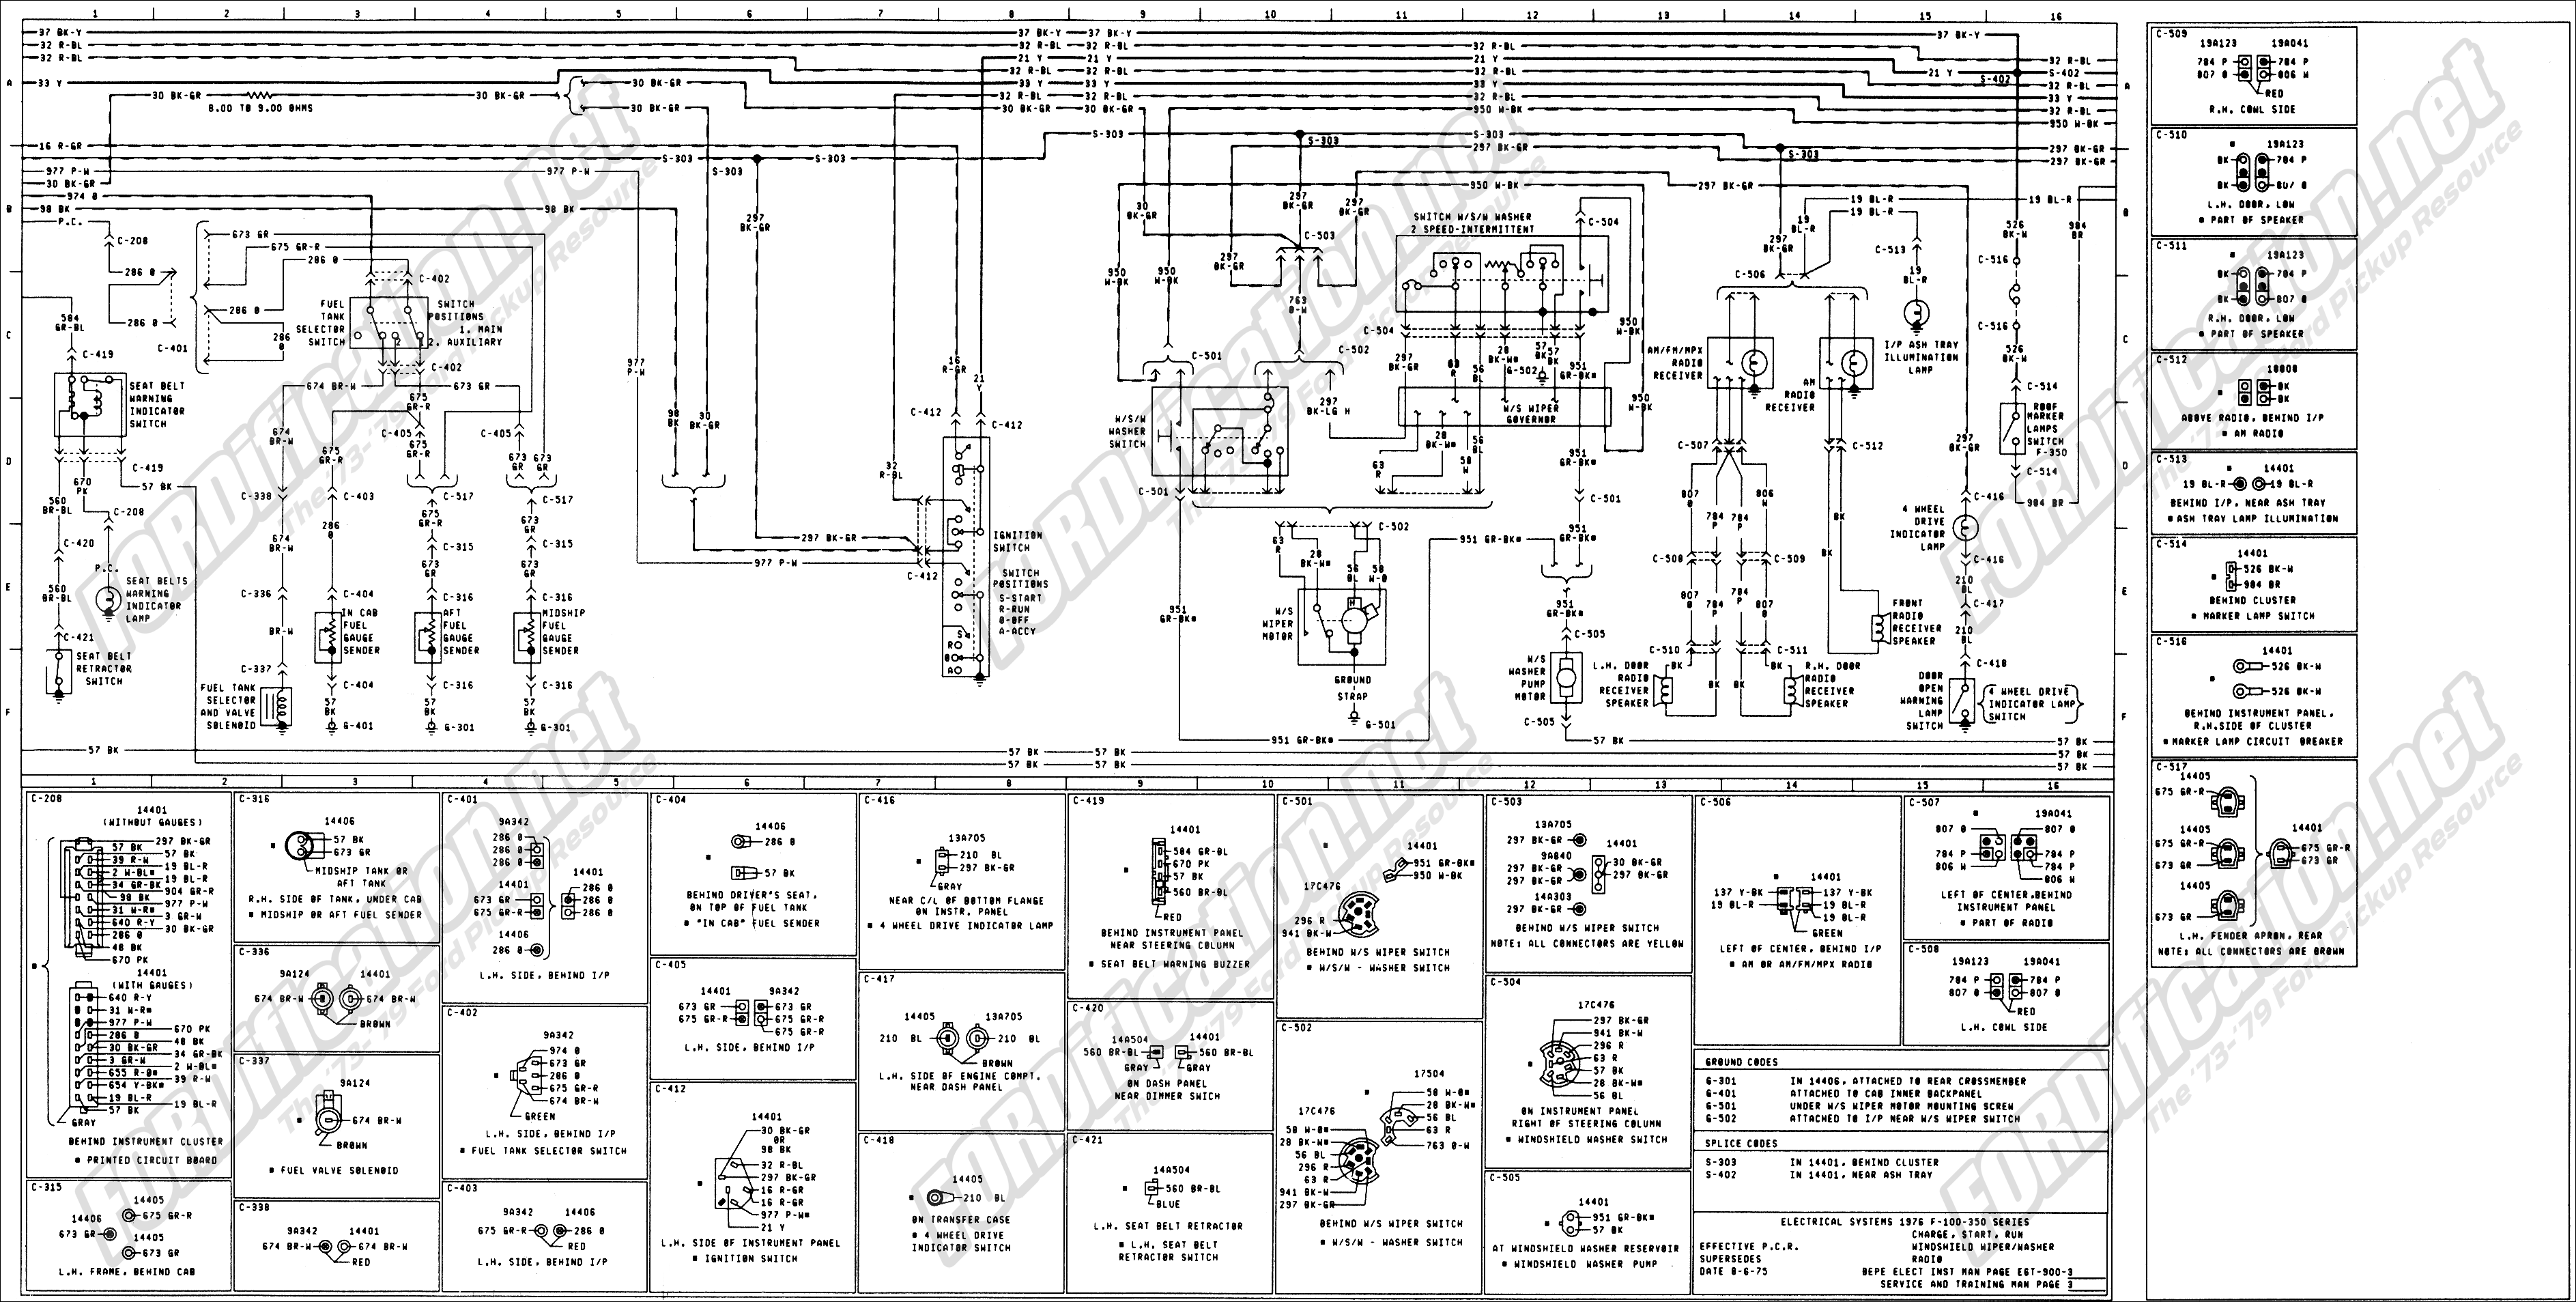 wiring_76master_3of9 1973 1979 ford truck wiring diagrams & schematics fordification net 2003 ford f250 wiring diagram online at fashall.co